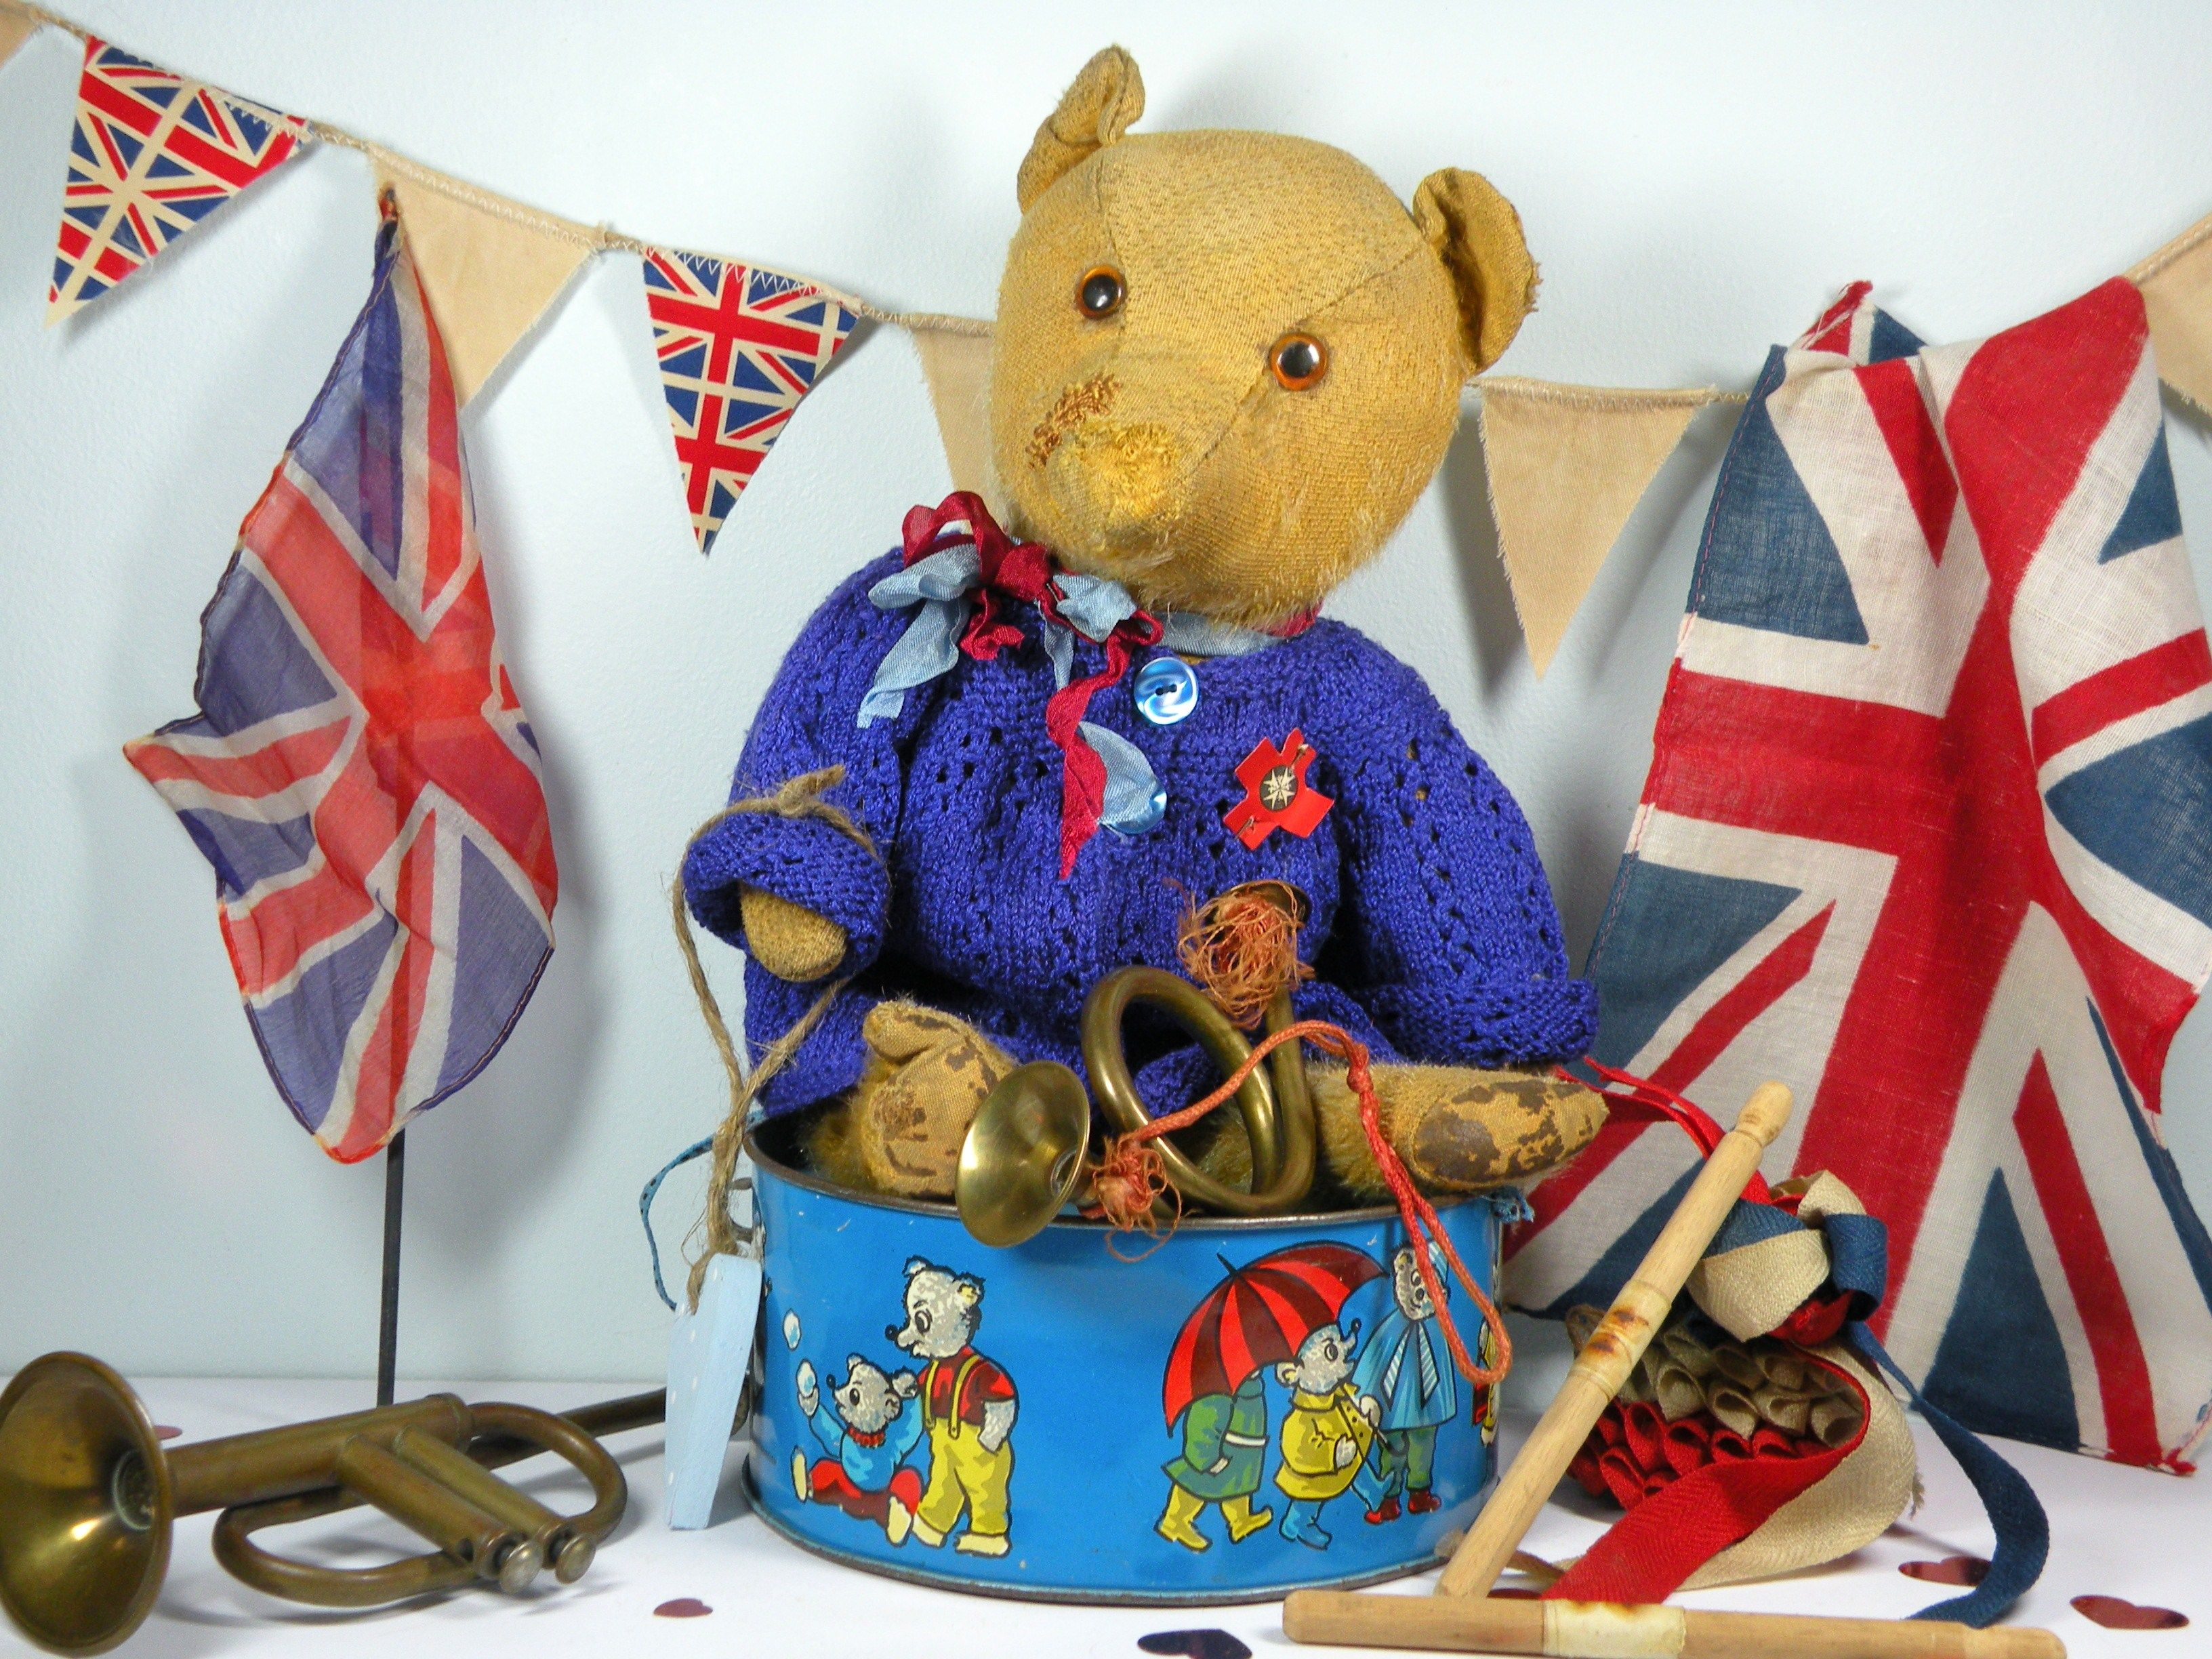 Poor Old Teddi-Bare a well loved Once upon a time bear C1950 English bear www.onceuponatimebears.co.uk